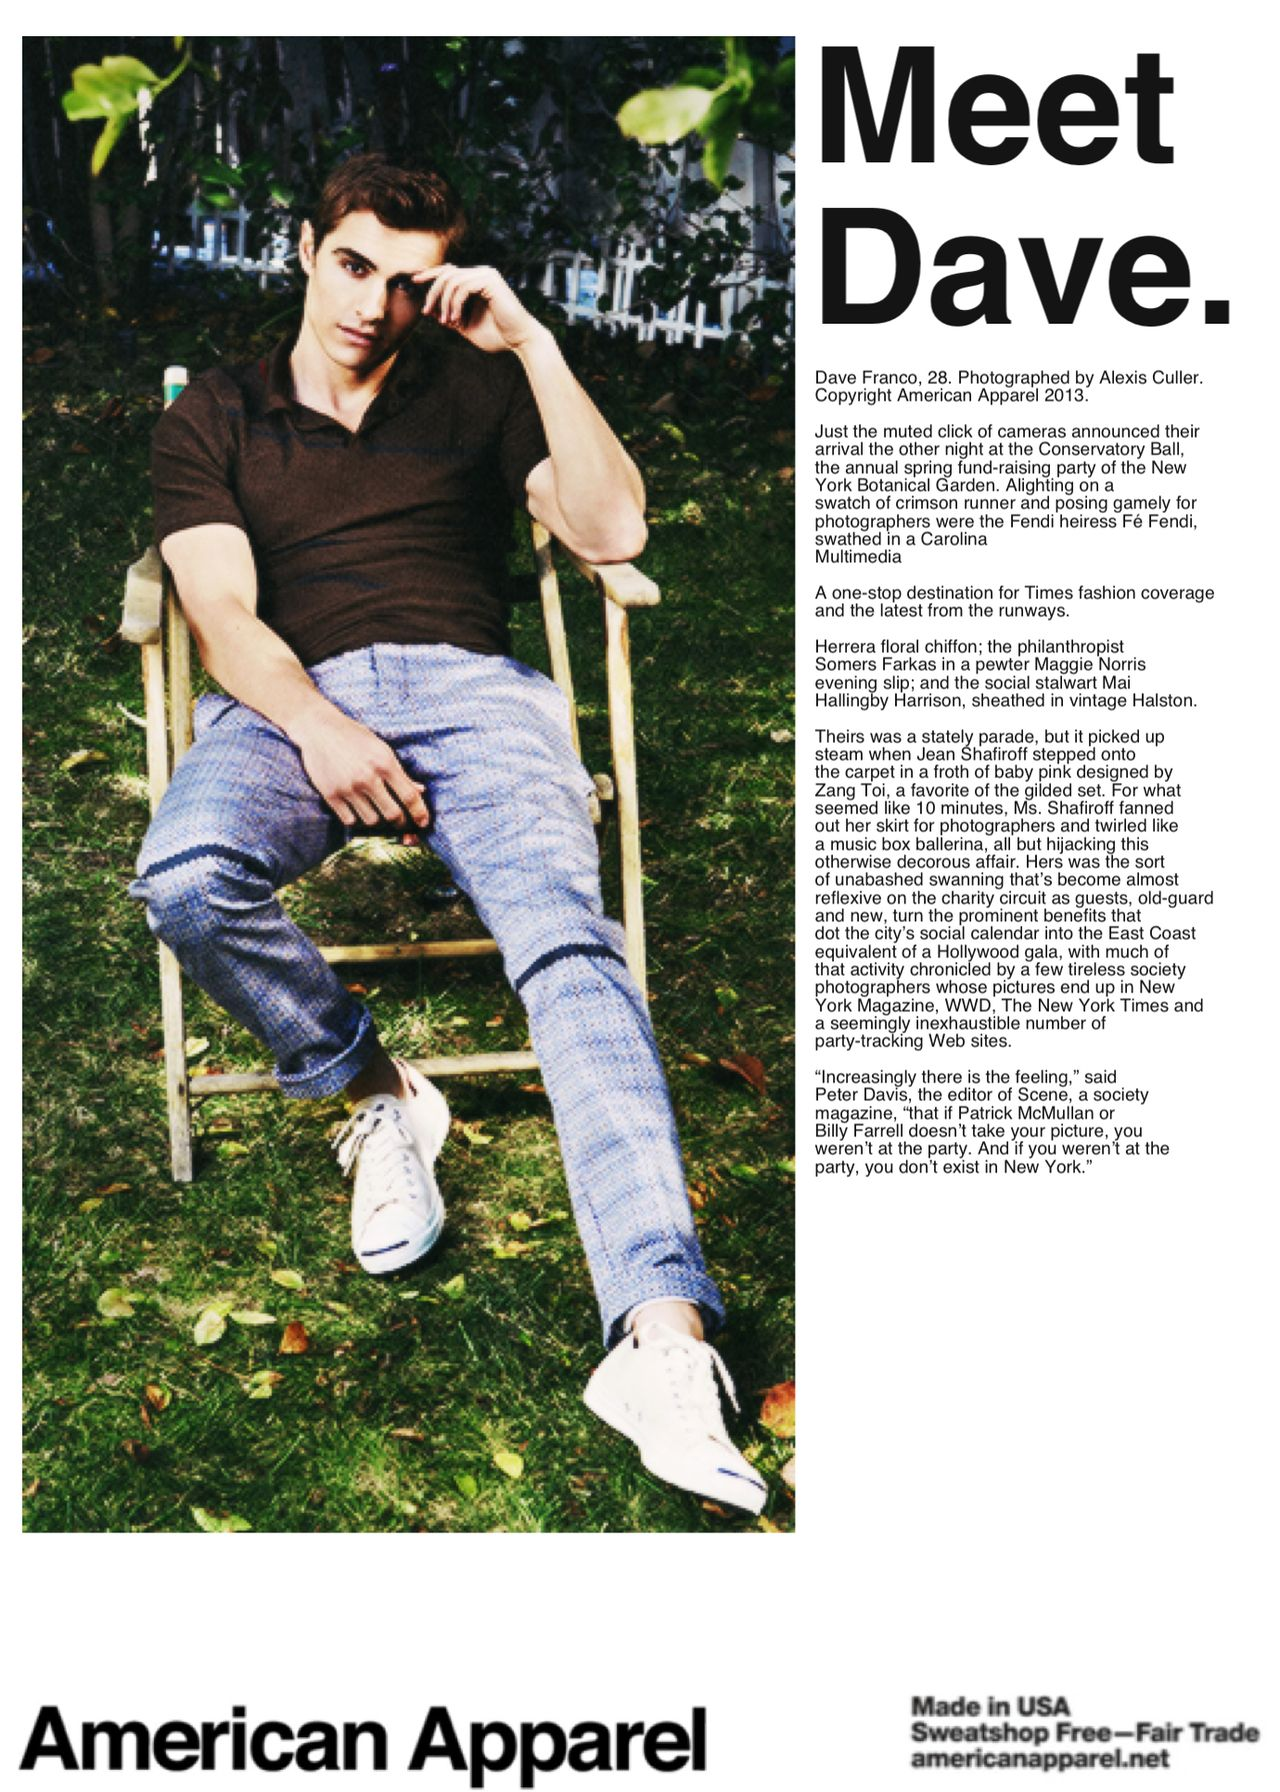 I would love to meet dave dave franco idek pinterest dave i would love to meet dave m4hsunfo